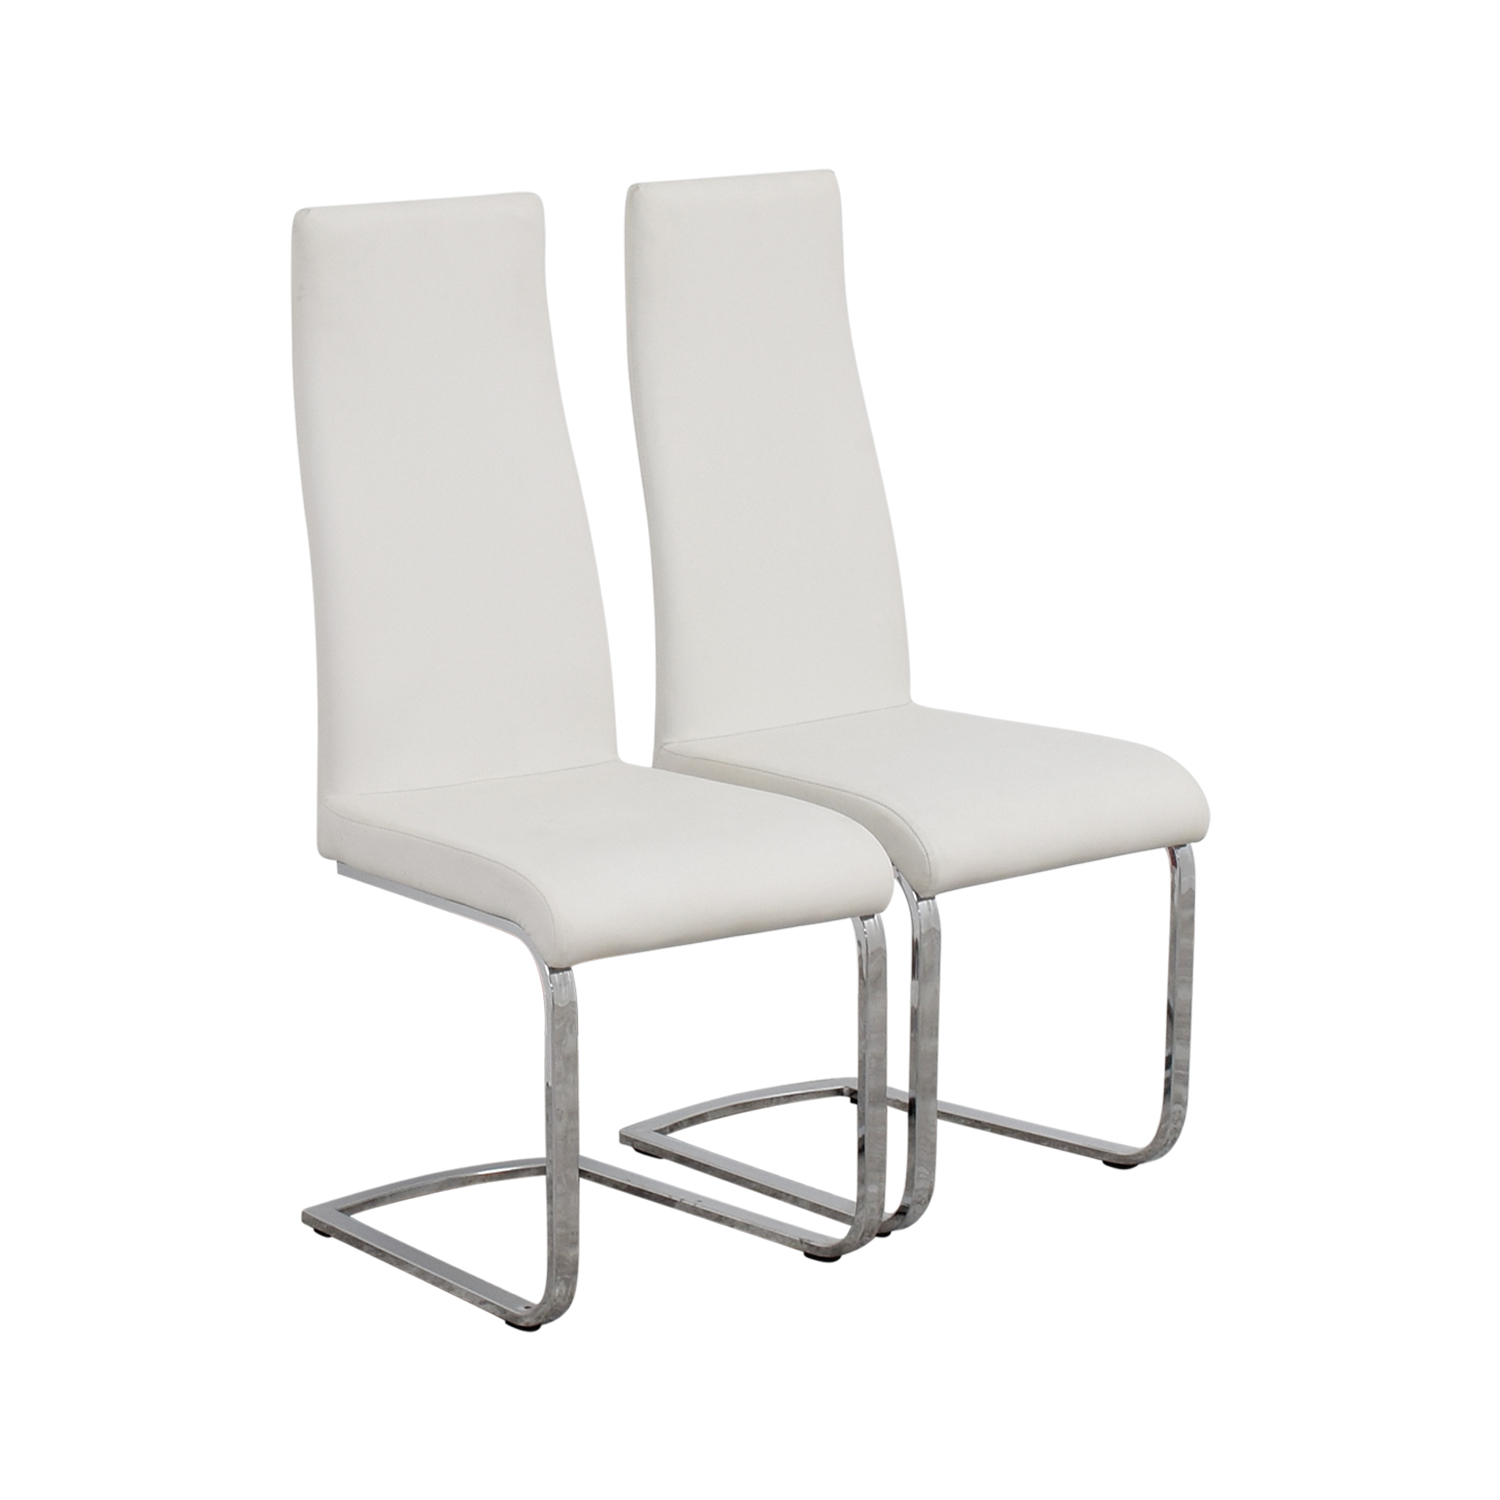 buy Coaster Furniture Breuer Style High Back Dining Chair in White Leatherette Coaster Furniture Dining Chairs